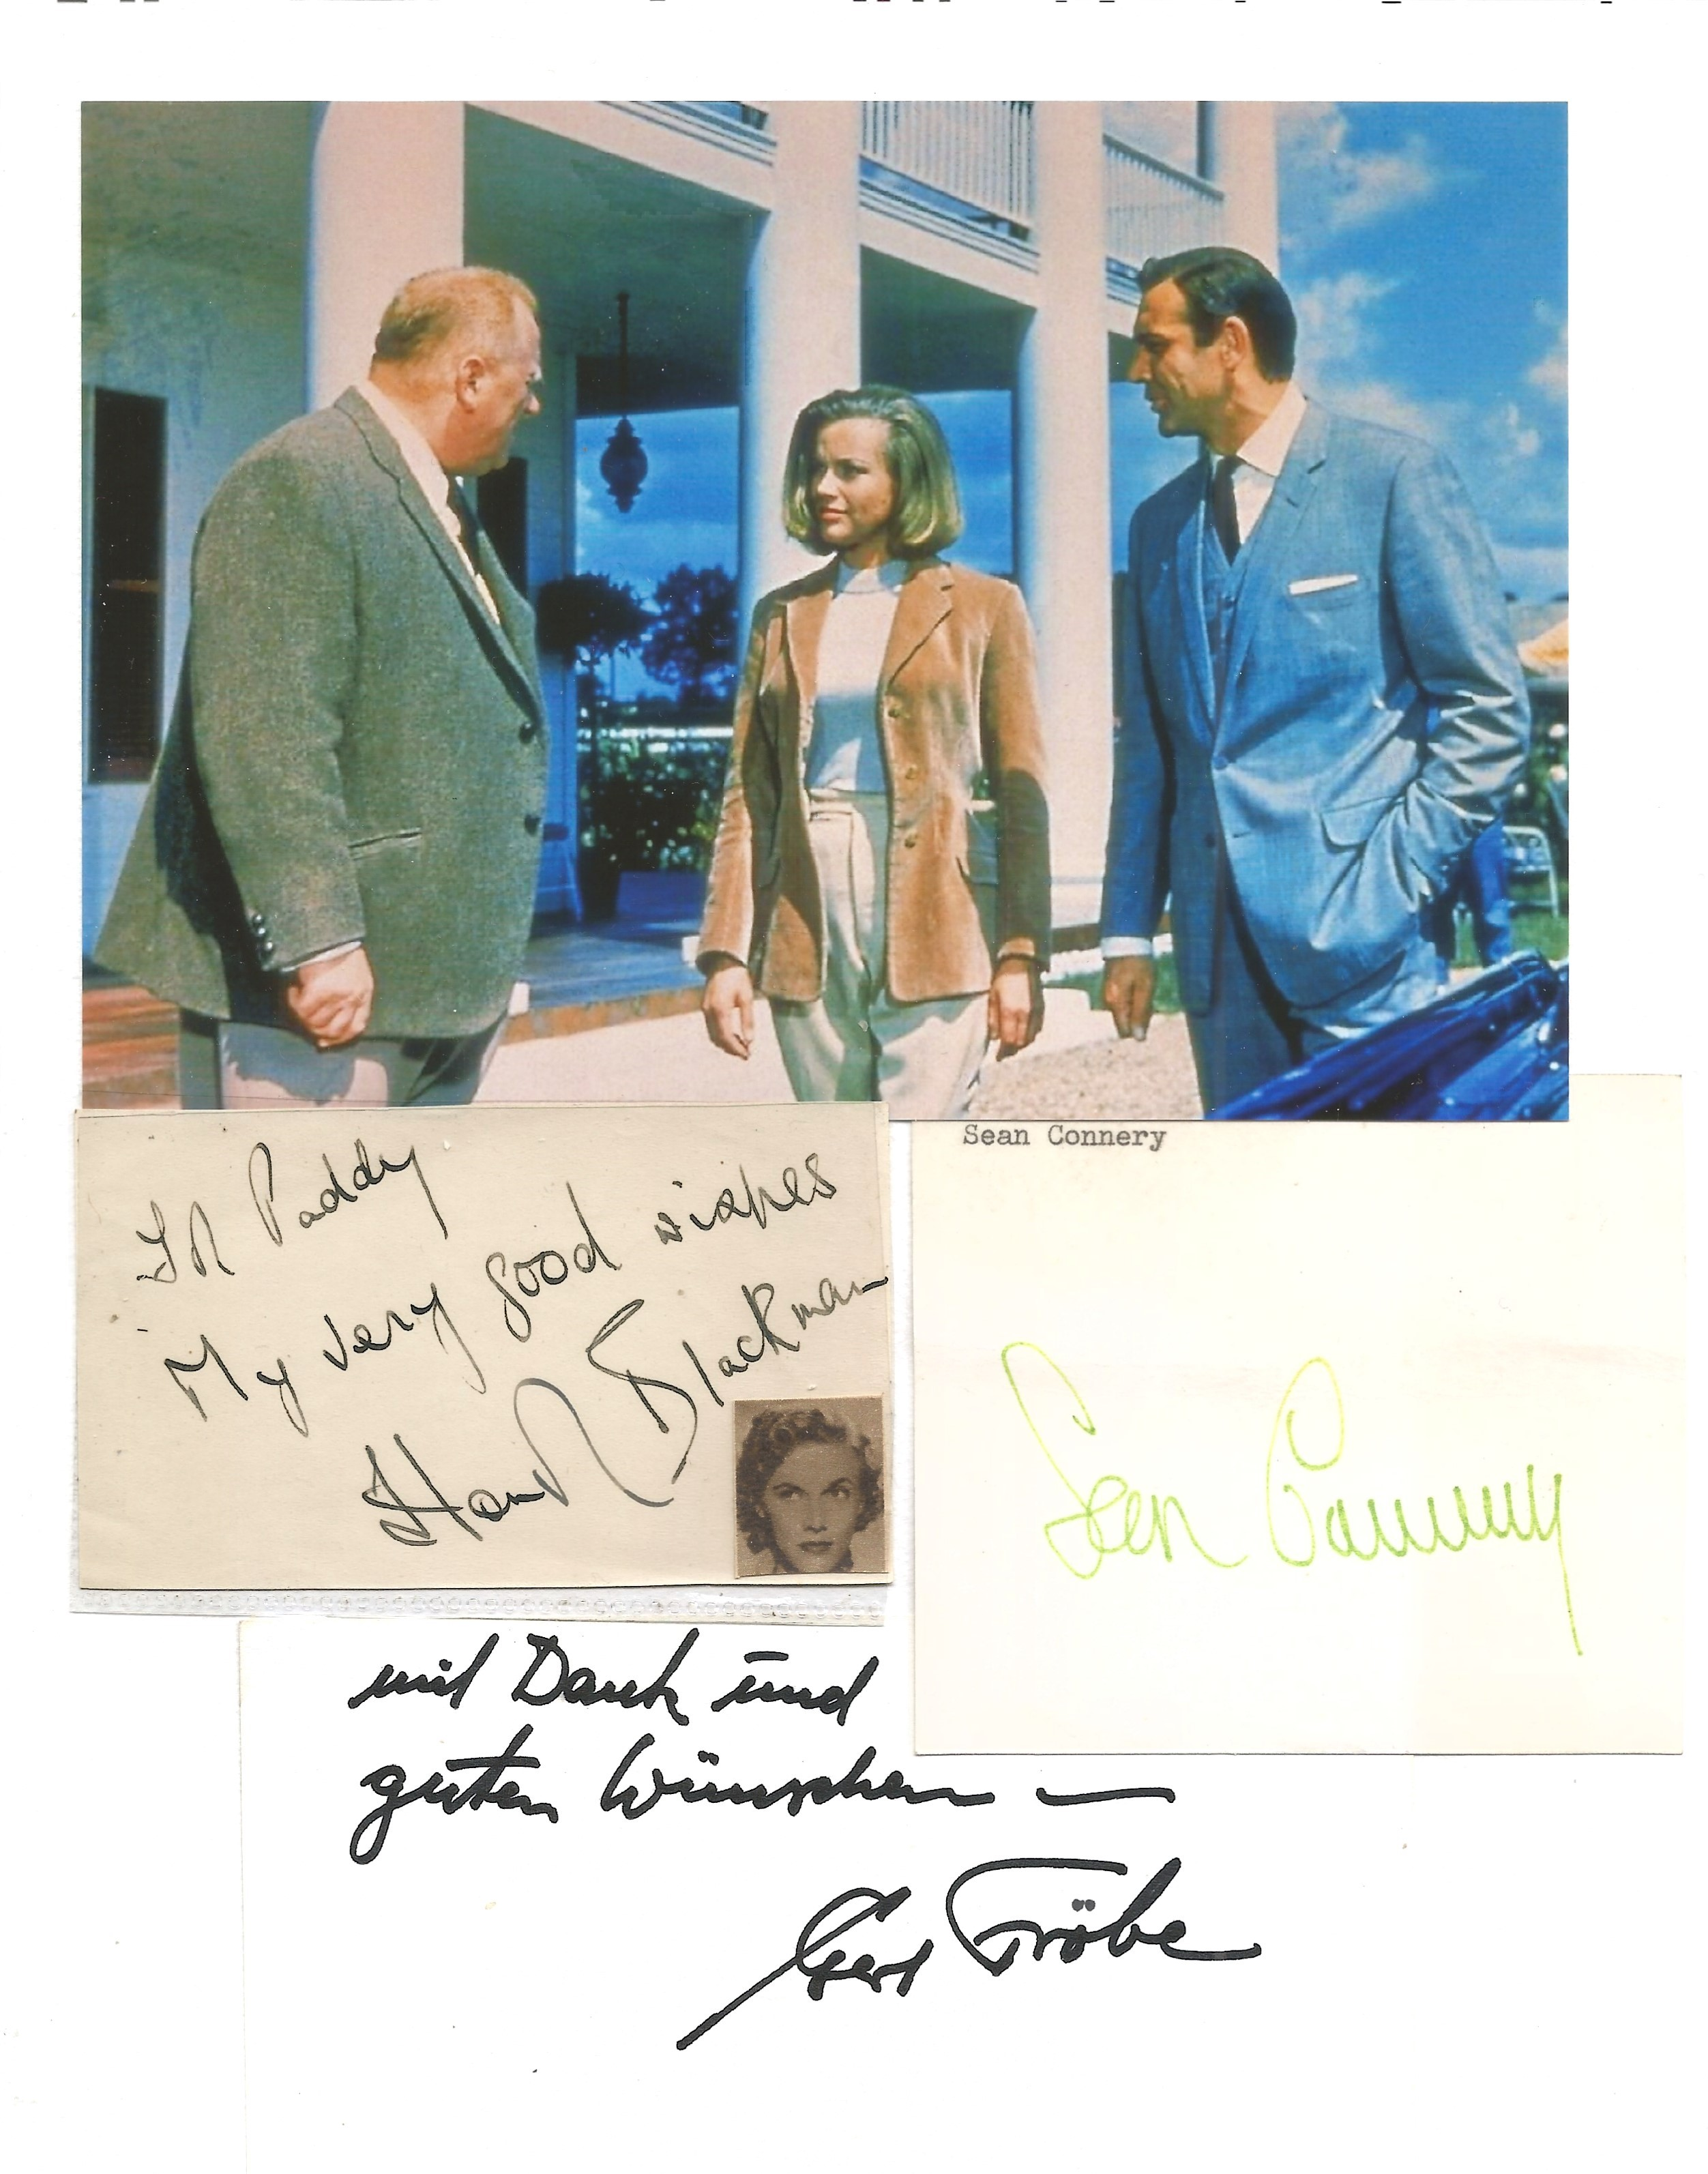 James Bond autographs Sean Connery piece from letter, Gert Frobe card and Honor Blackman album page.